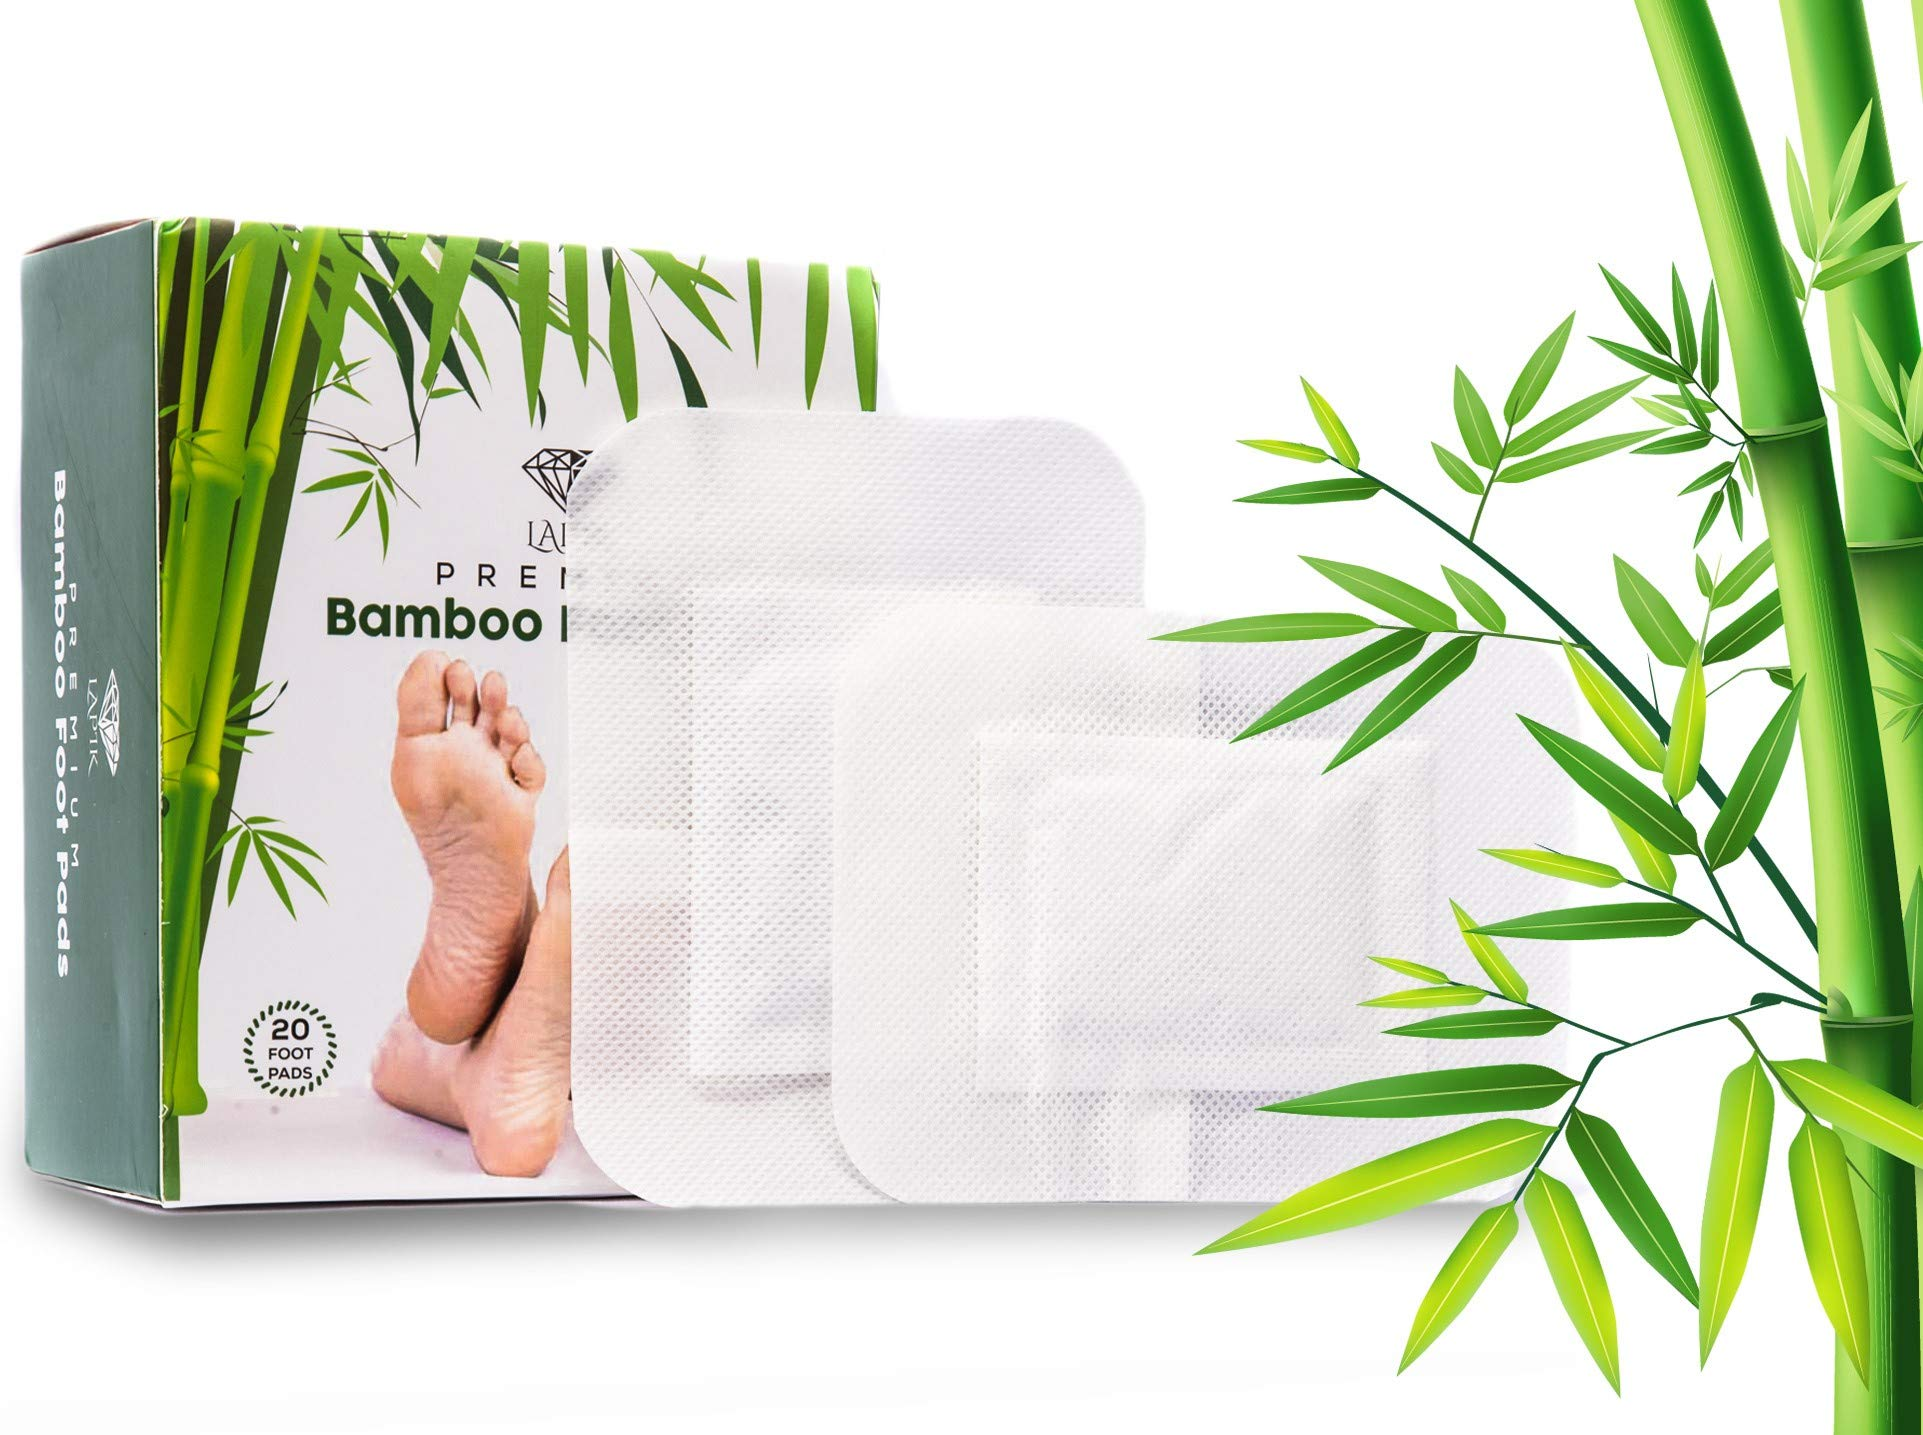 Foot Pads - Remove Impurities, Body Cleansing, Pain & Stress Relief, Improve Sleep, 100% Organic 20pcs by LAPIK